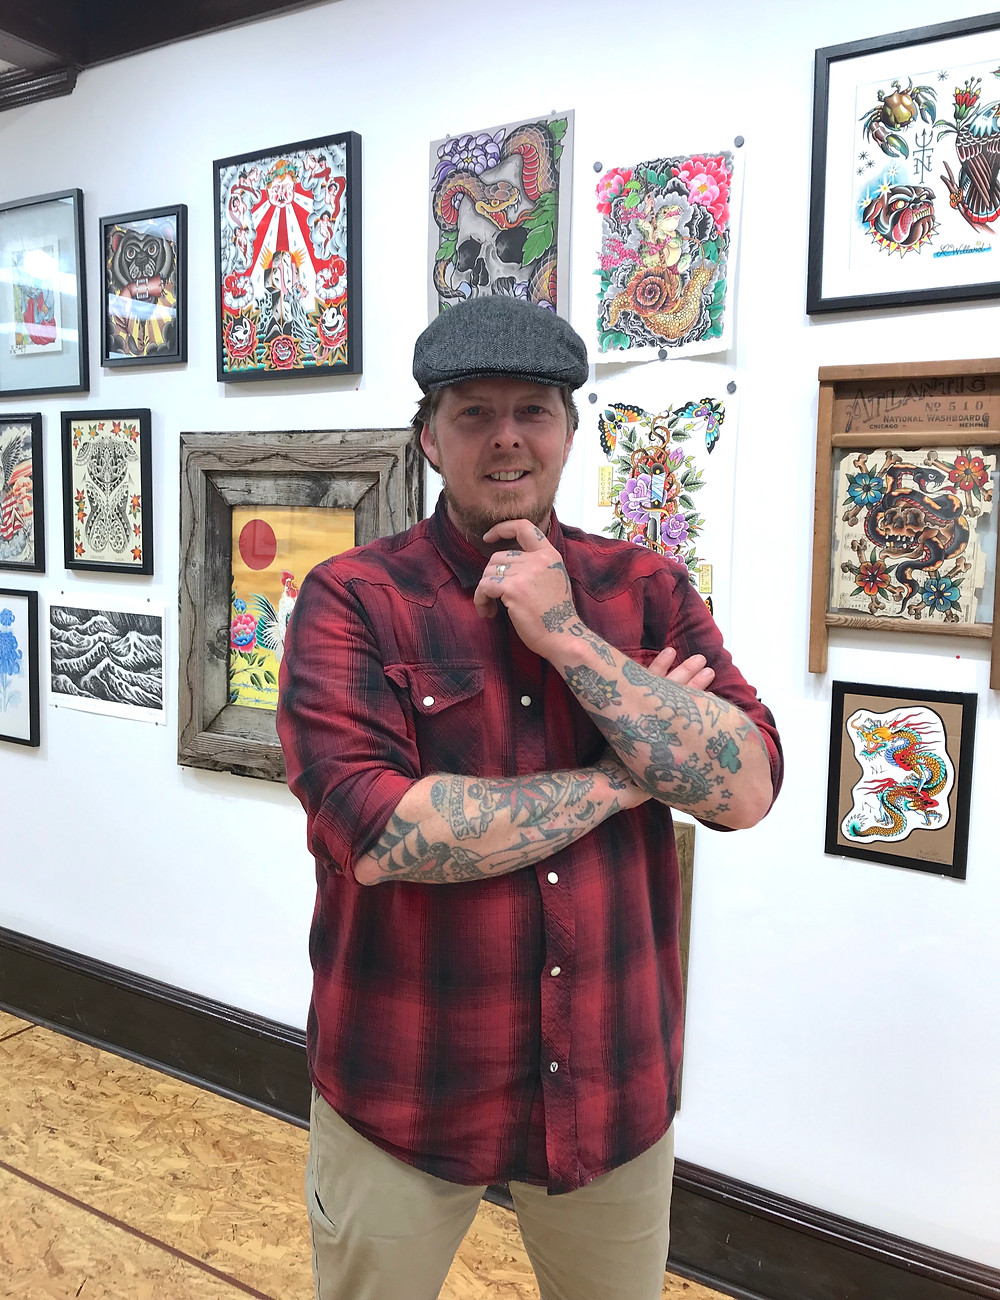 Trident Arts Redefines The Art Space